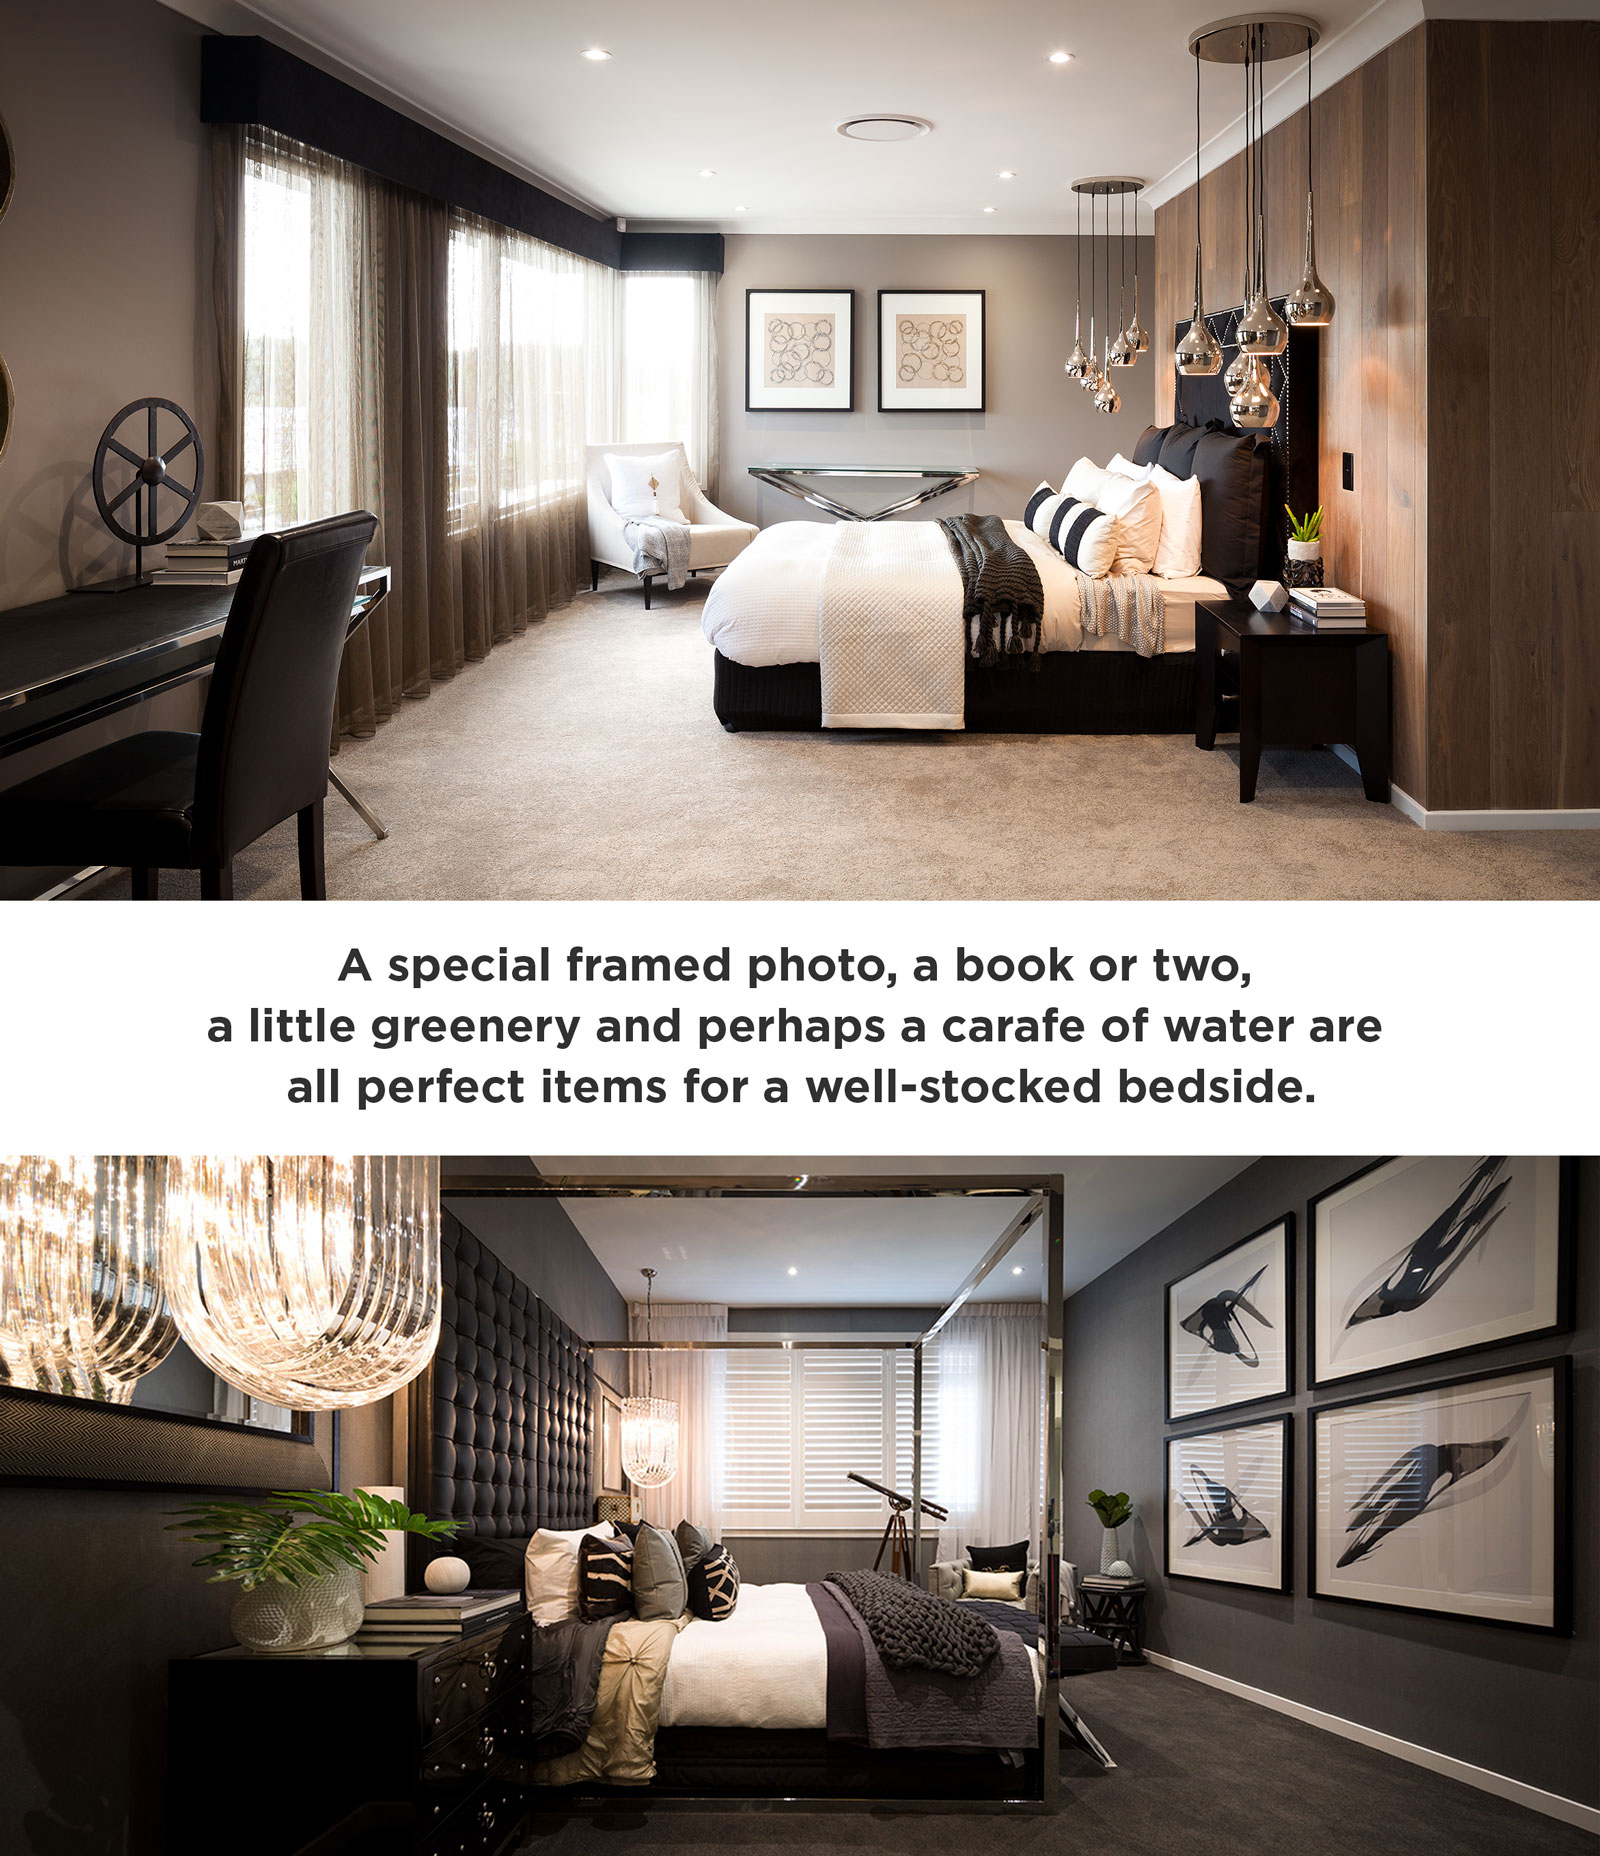 Stacked-Bedroom-Word-image2-R-web